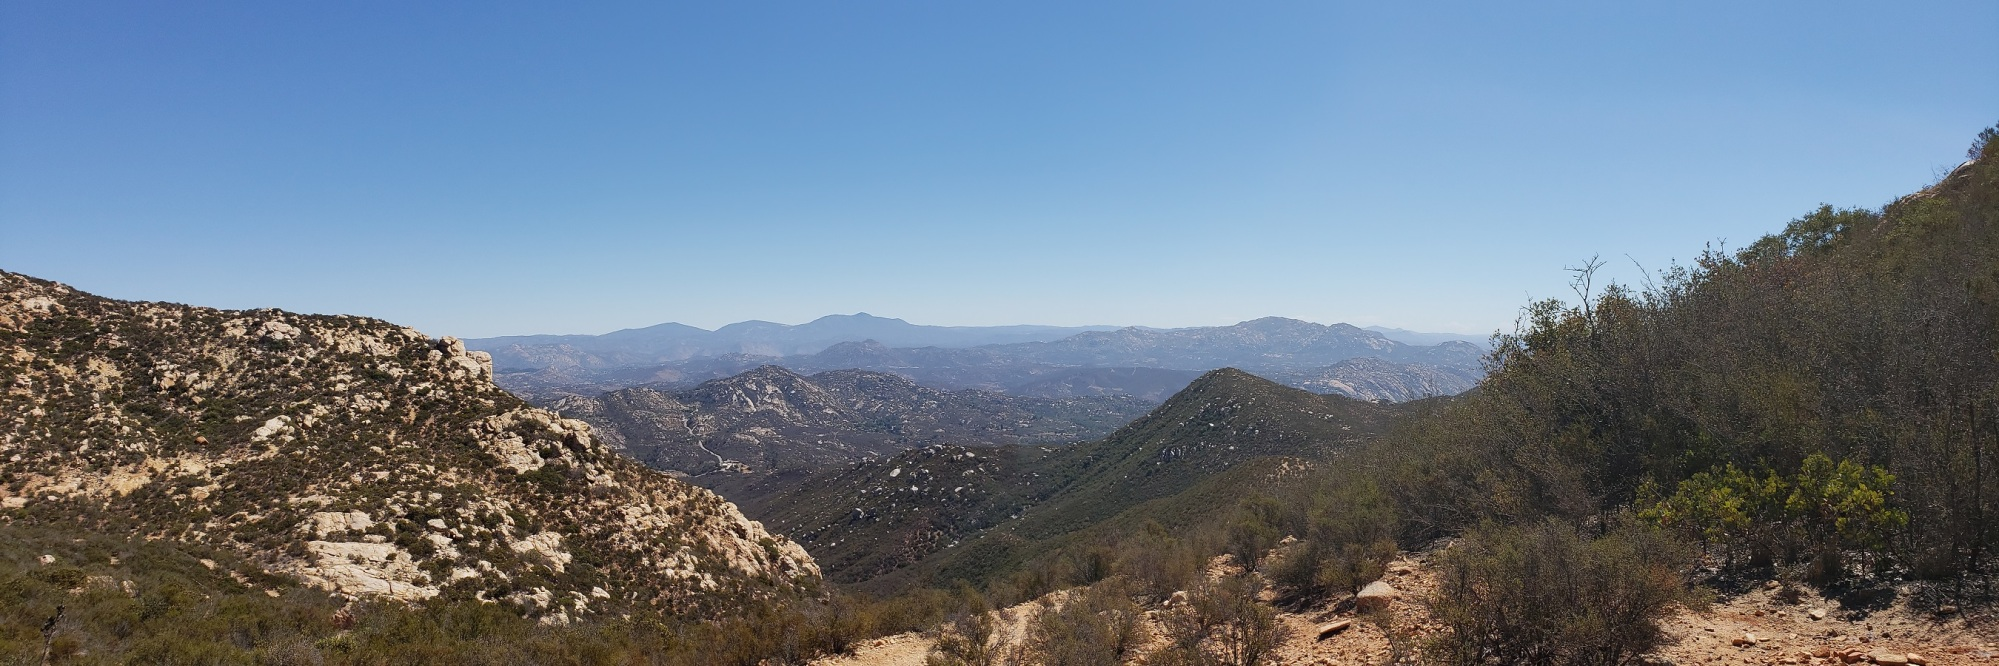 Ramona Overlook, San Diego County, CA